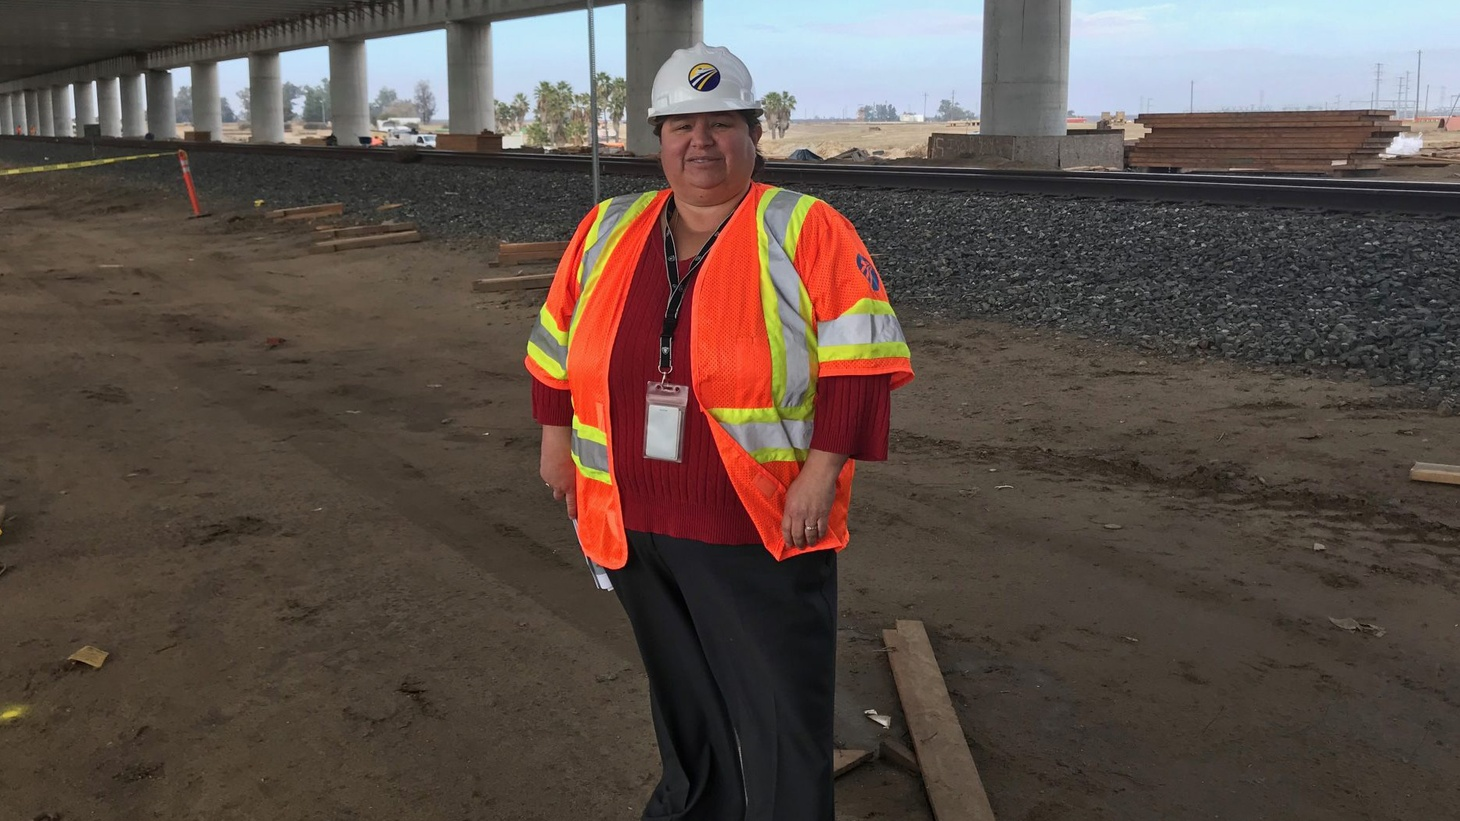 Diana Gomez, Central Valley regional director for the California High-Speed Rail Authority, oversees rail construction from Merced to north of Bakersfield.